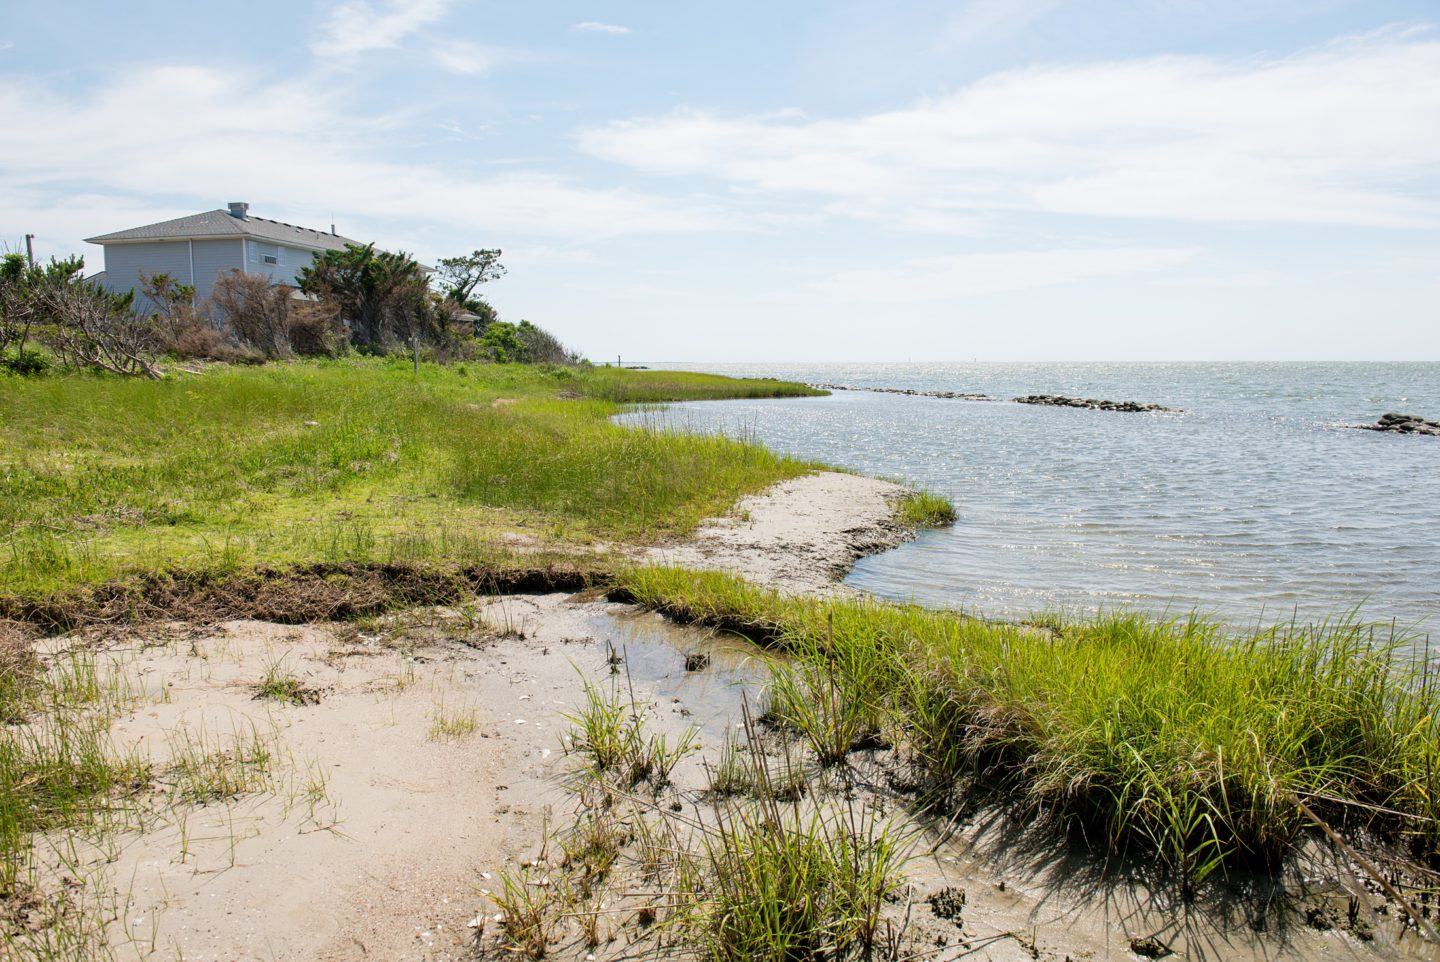 Essential First Visit Guide for Ocracoke Island in the Outer Banks, with a picture of a seashore and sea grass meeting the water and house in the distance.